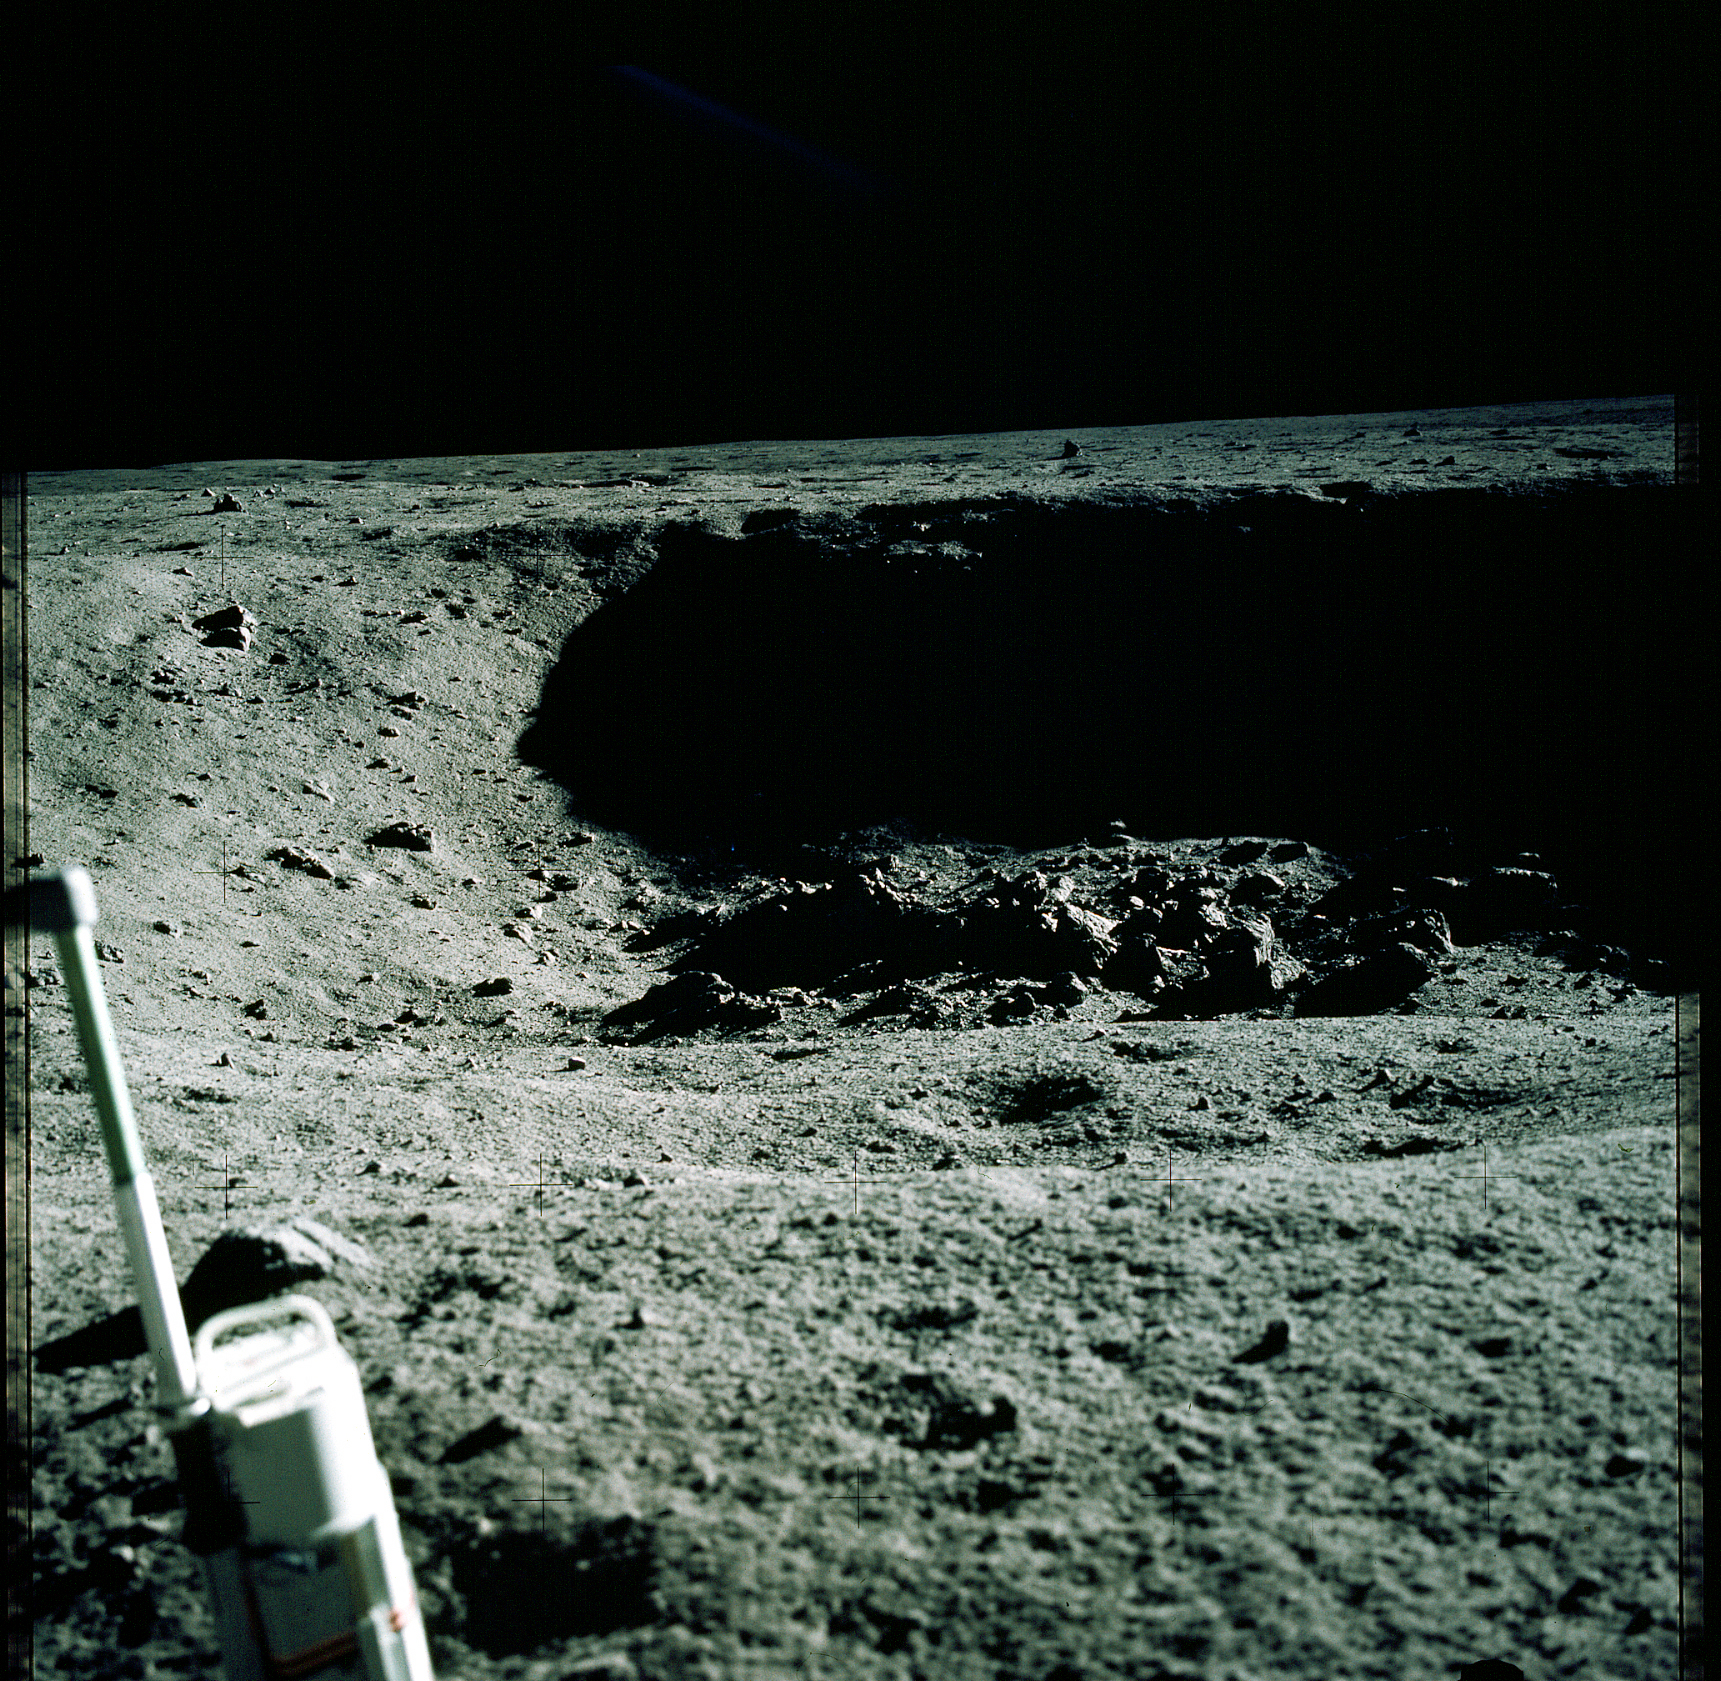 apollo 11 landing site earth - photo #27